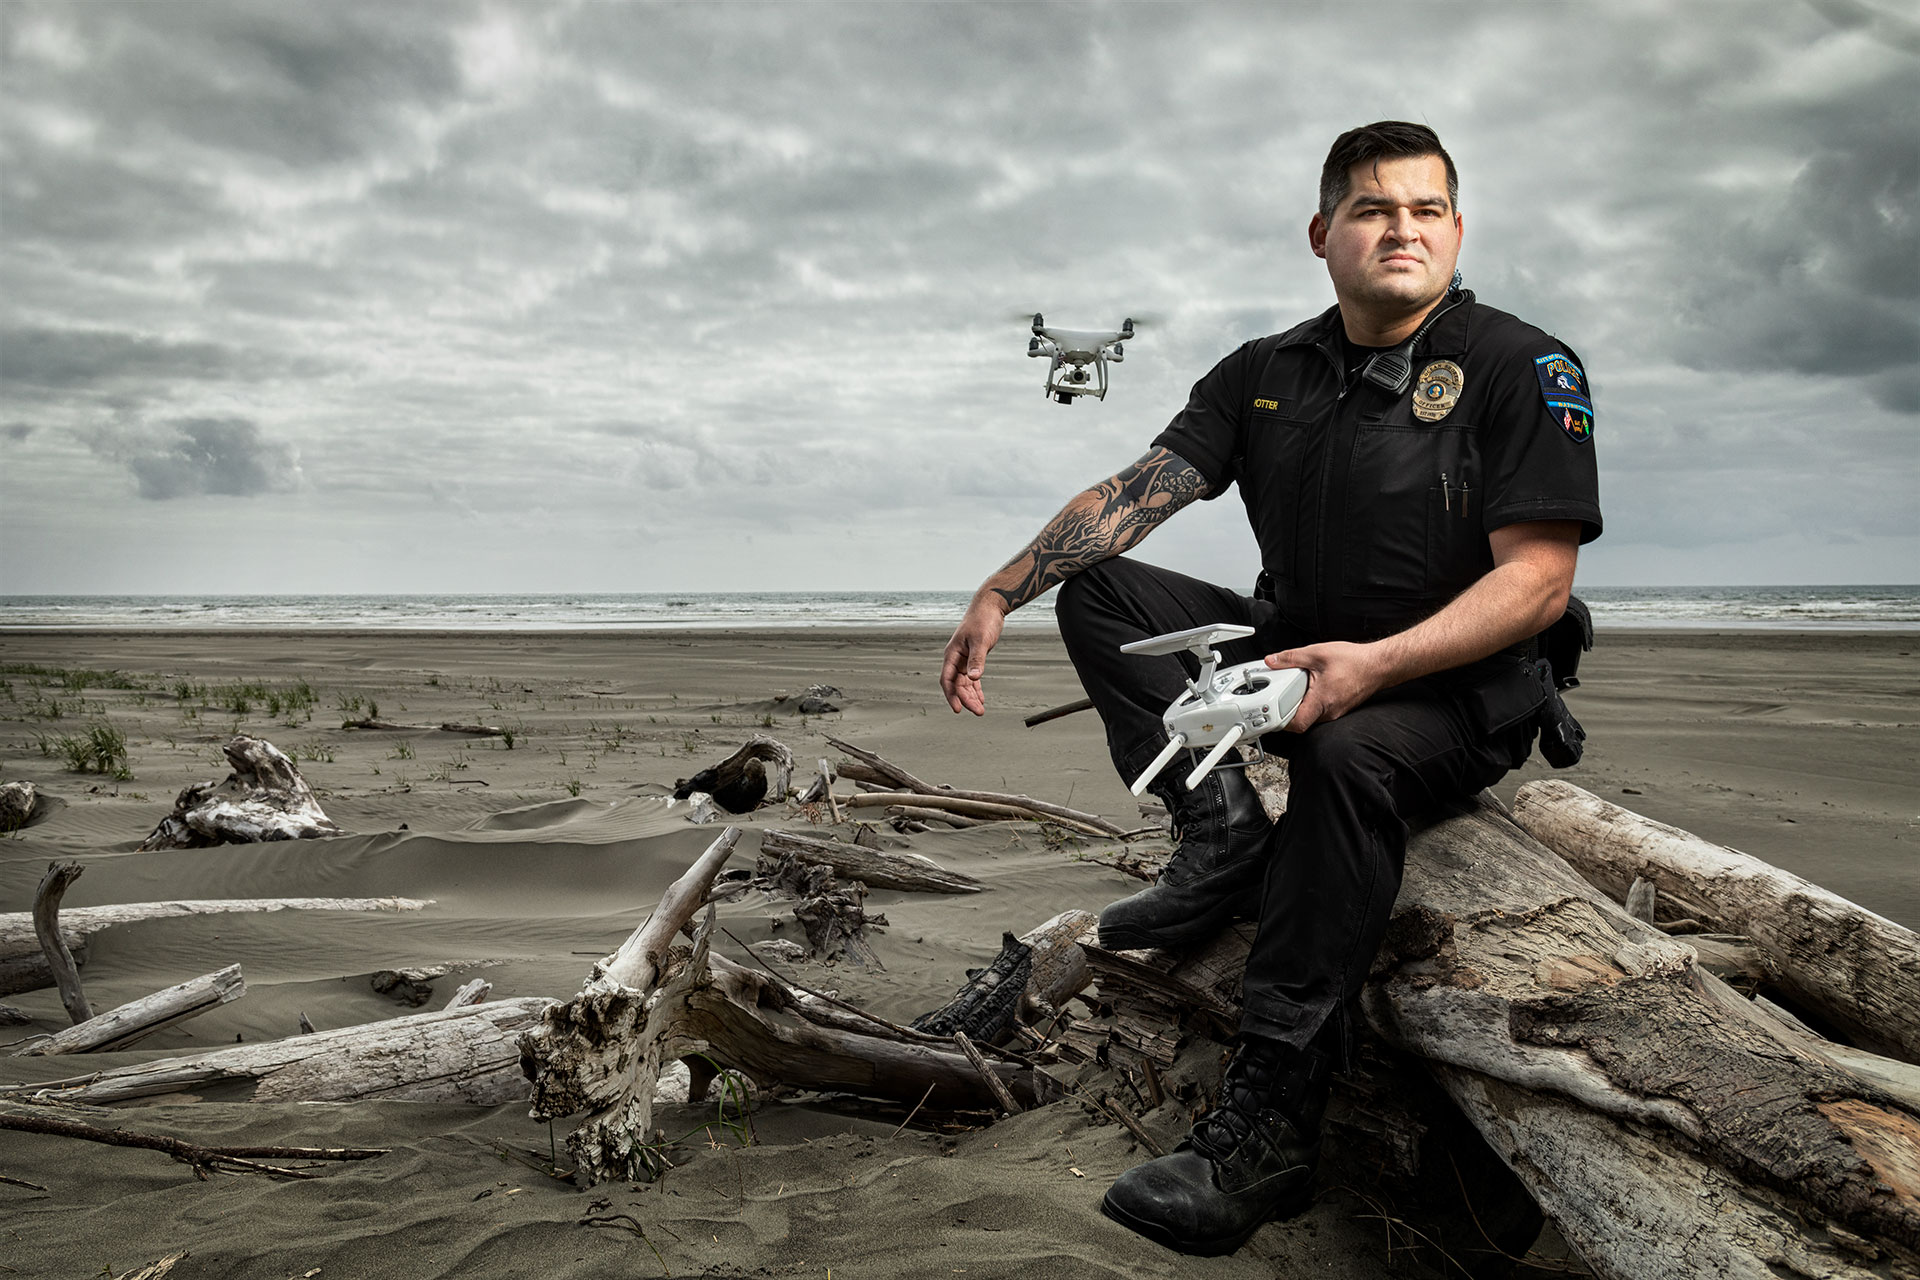 Clint Potter, Magazine Photography, beach police, drone, police news, seattle photographer, rick dahms, environmental portrait, annual report, commercial photographer seattle, headshots seattle